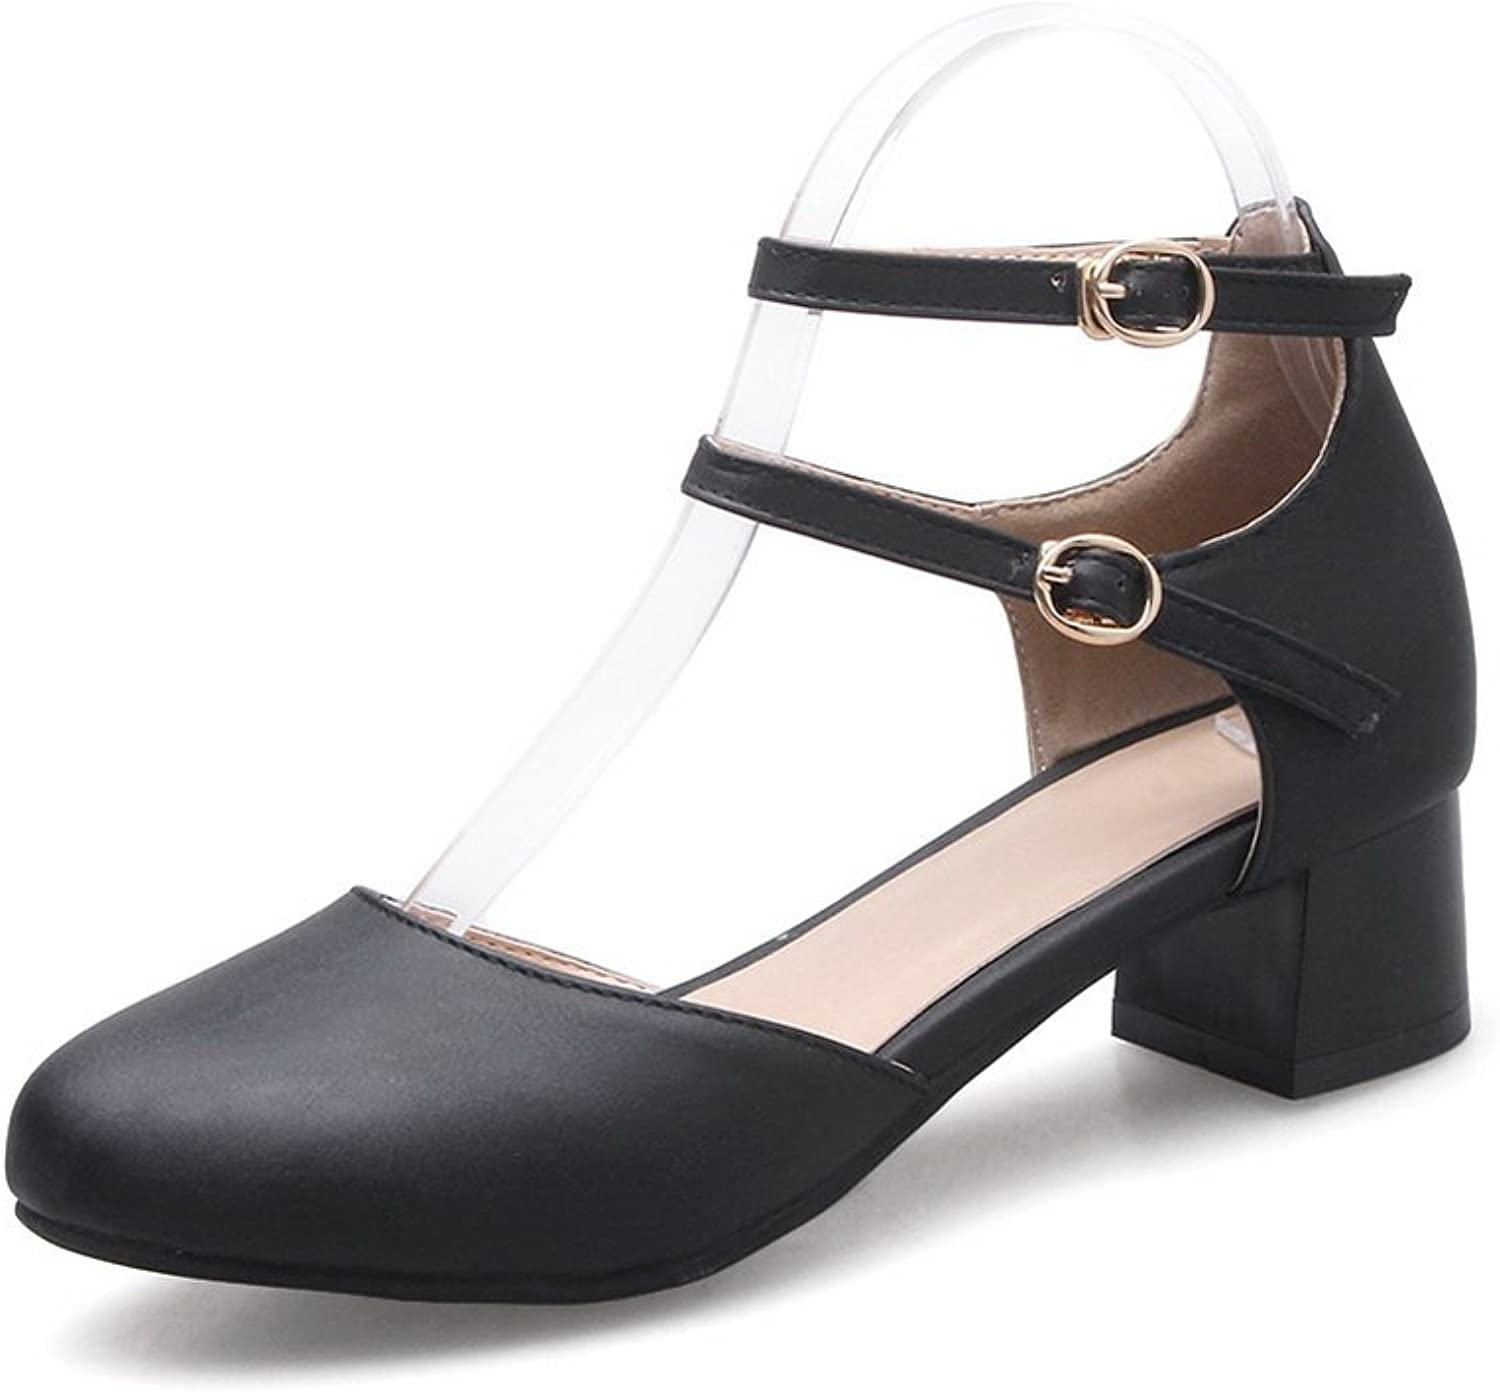 BalaMasa Womens Buckle Chunky Heels Round-Toe Microfiber Pumps shoes